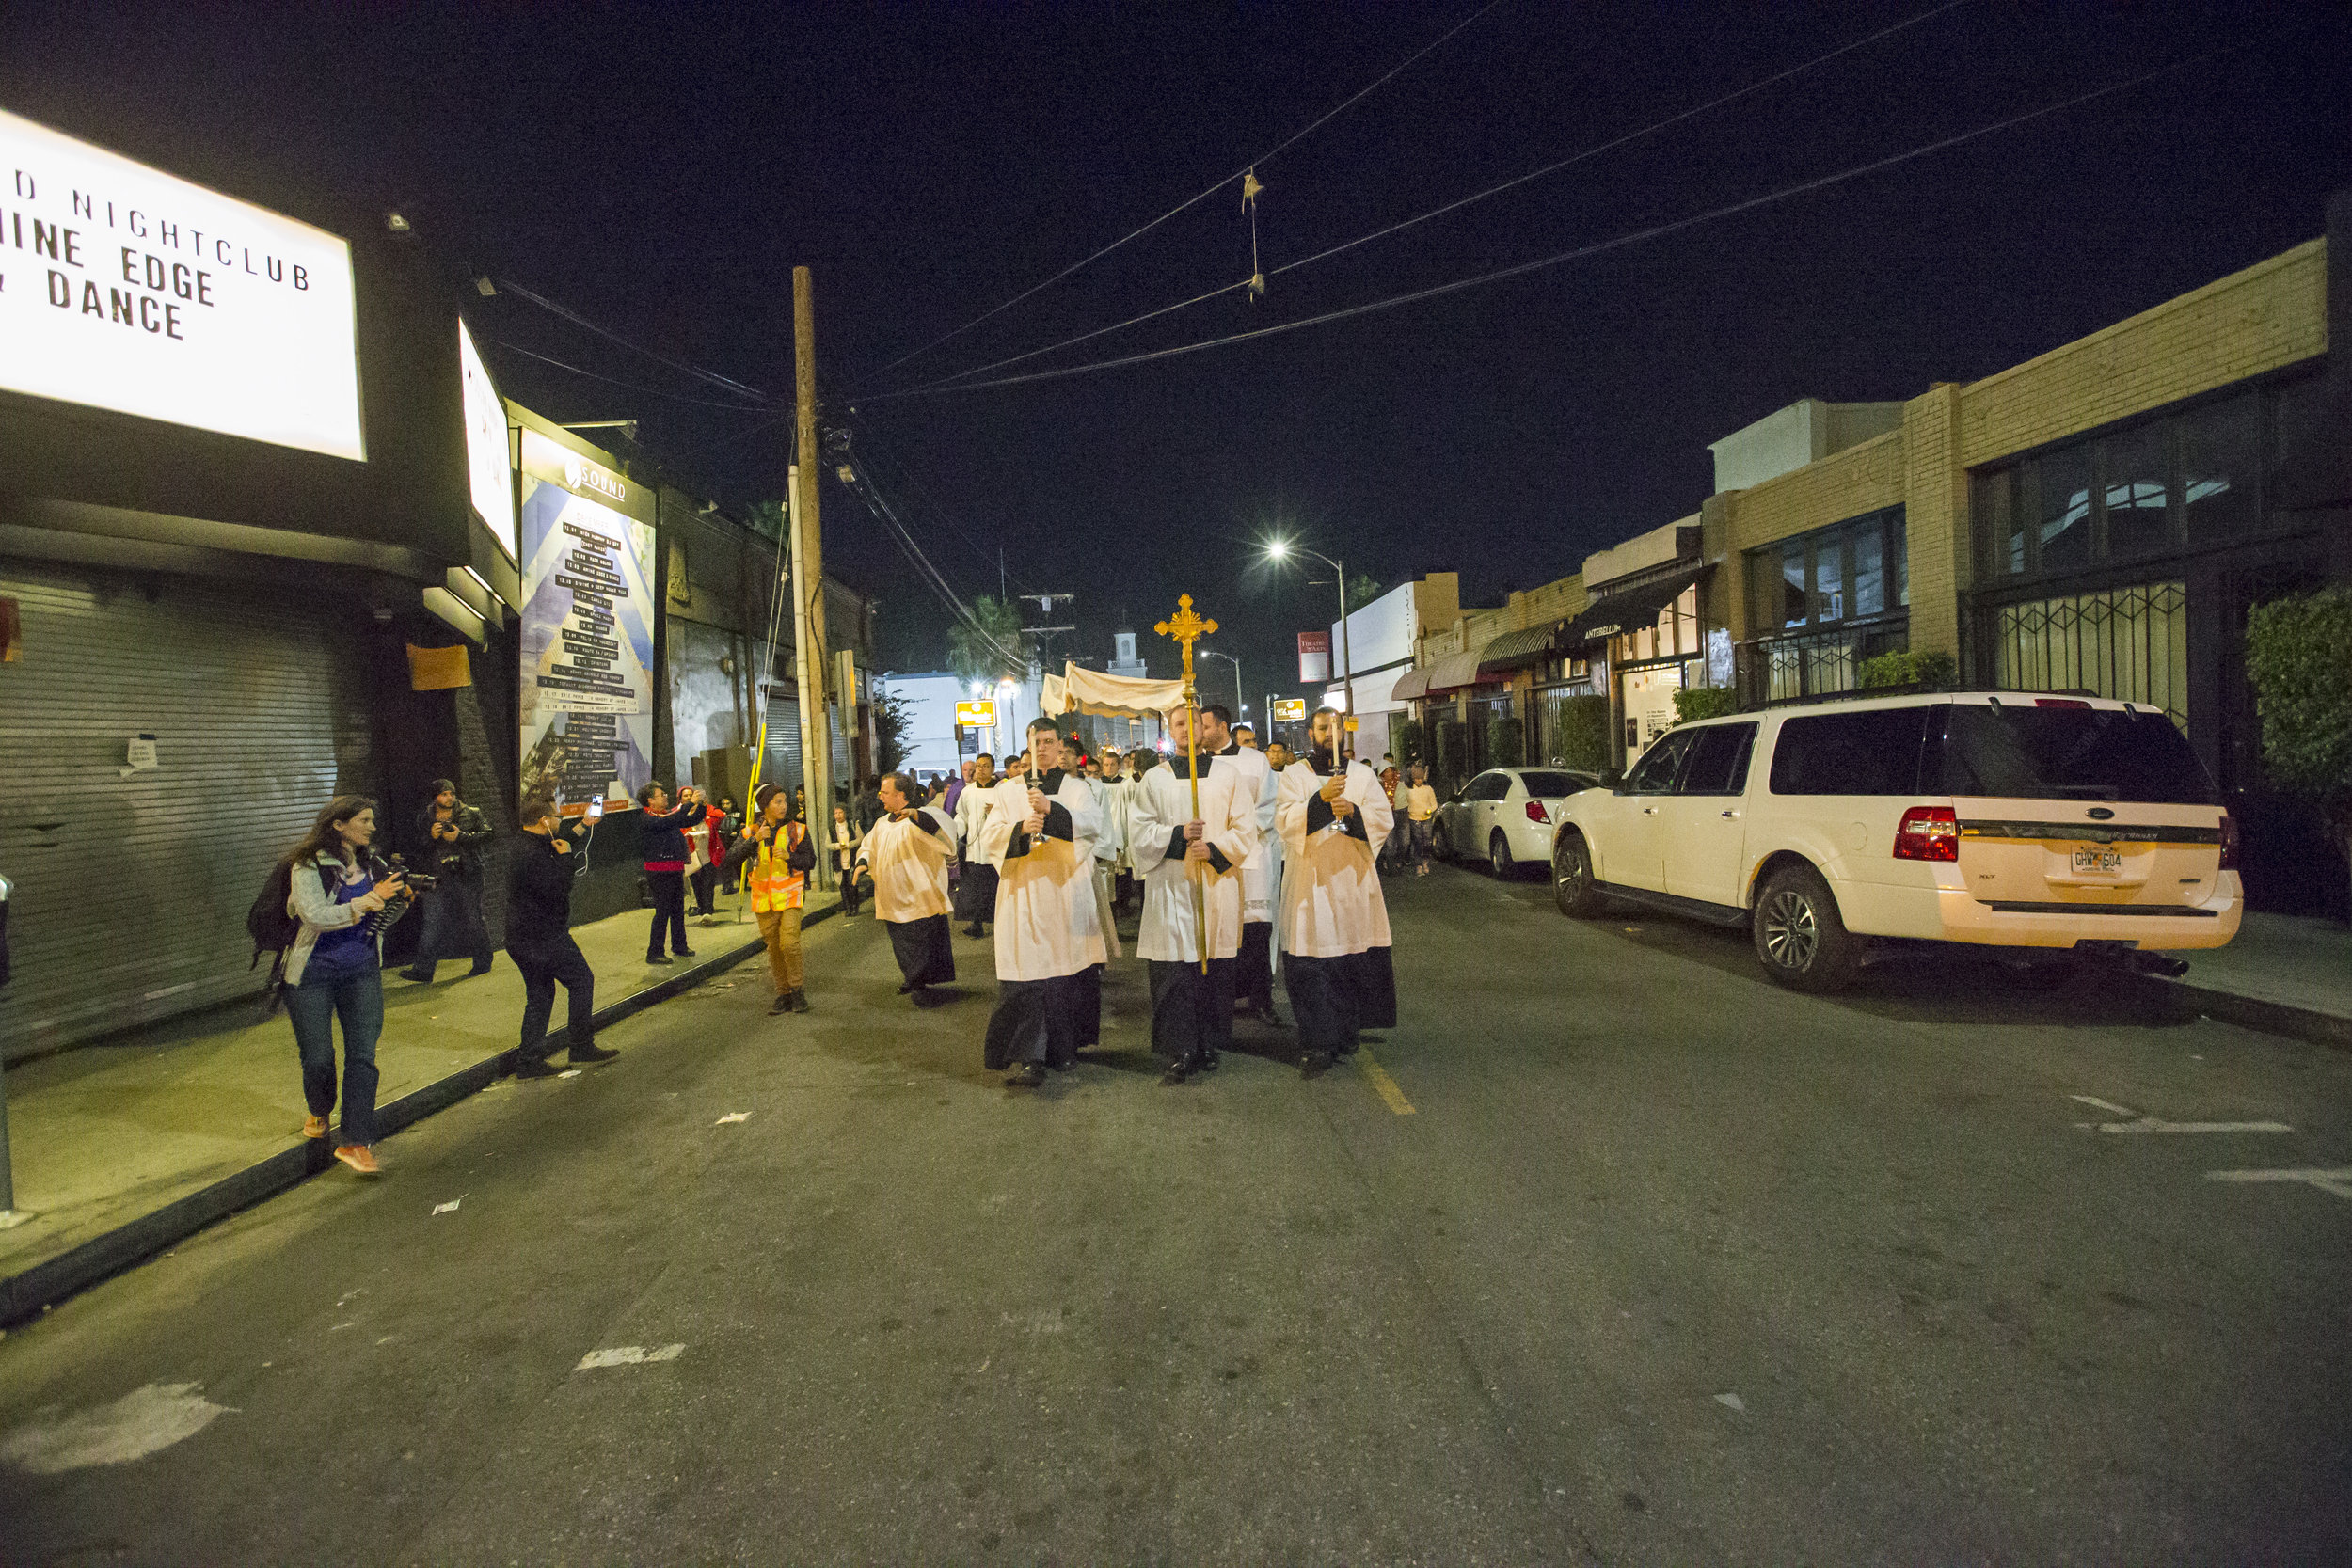 2016.12.03_hollywood_procession7.jpg